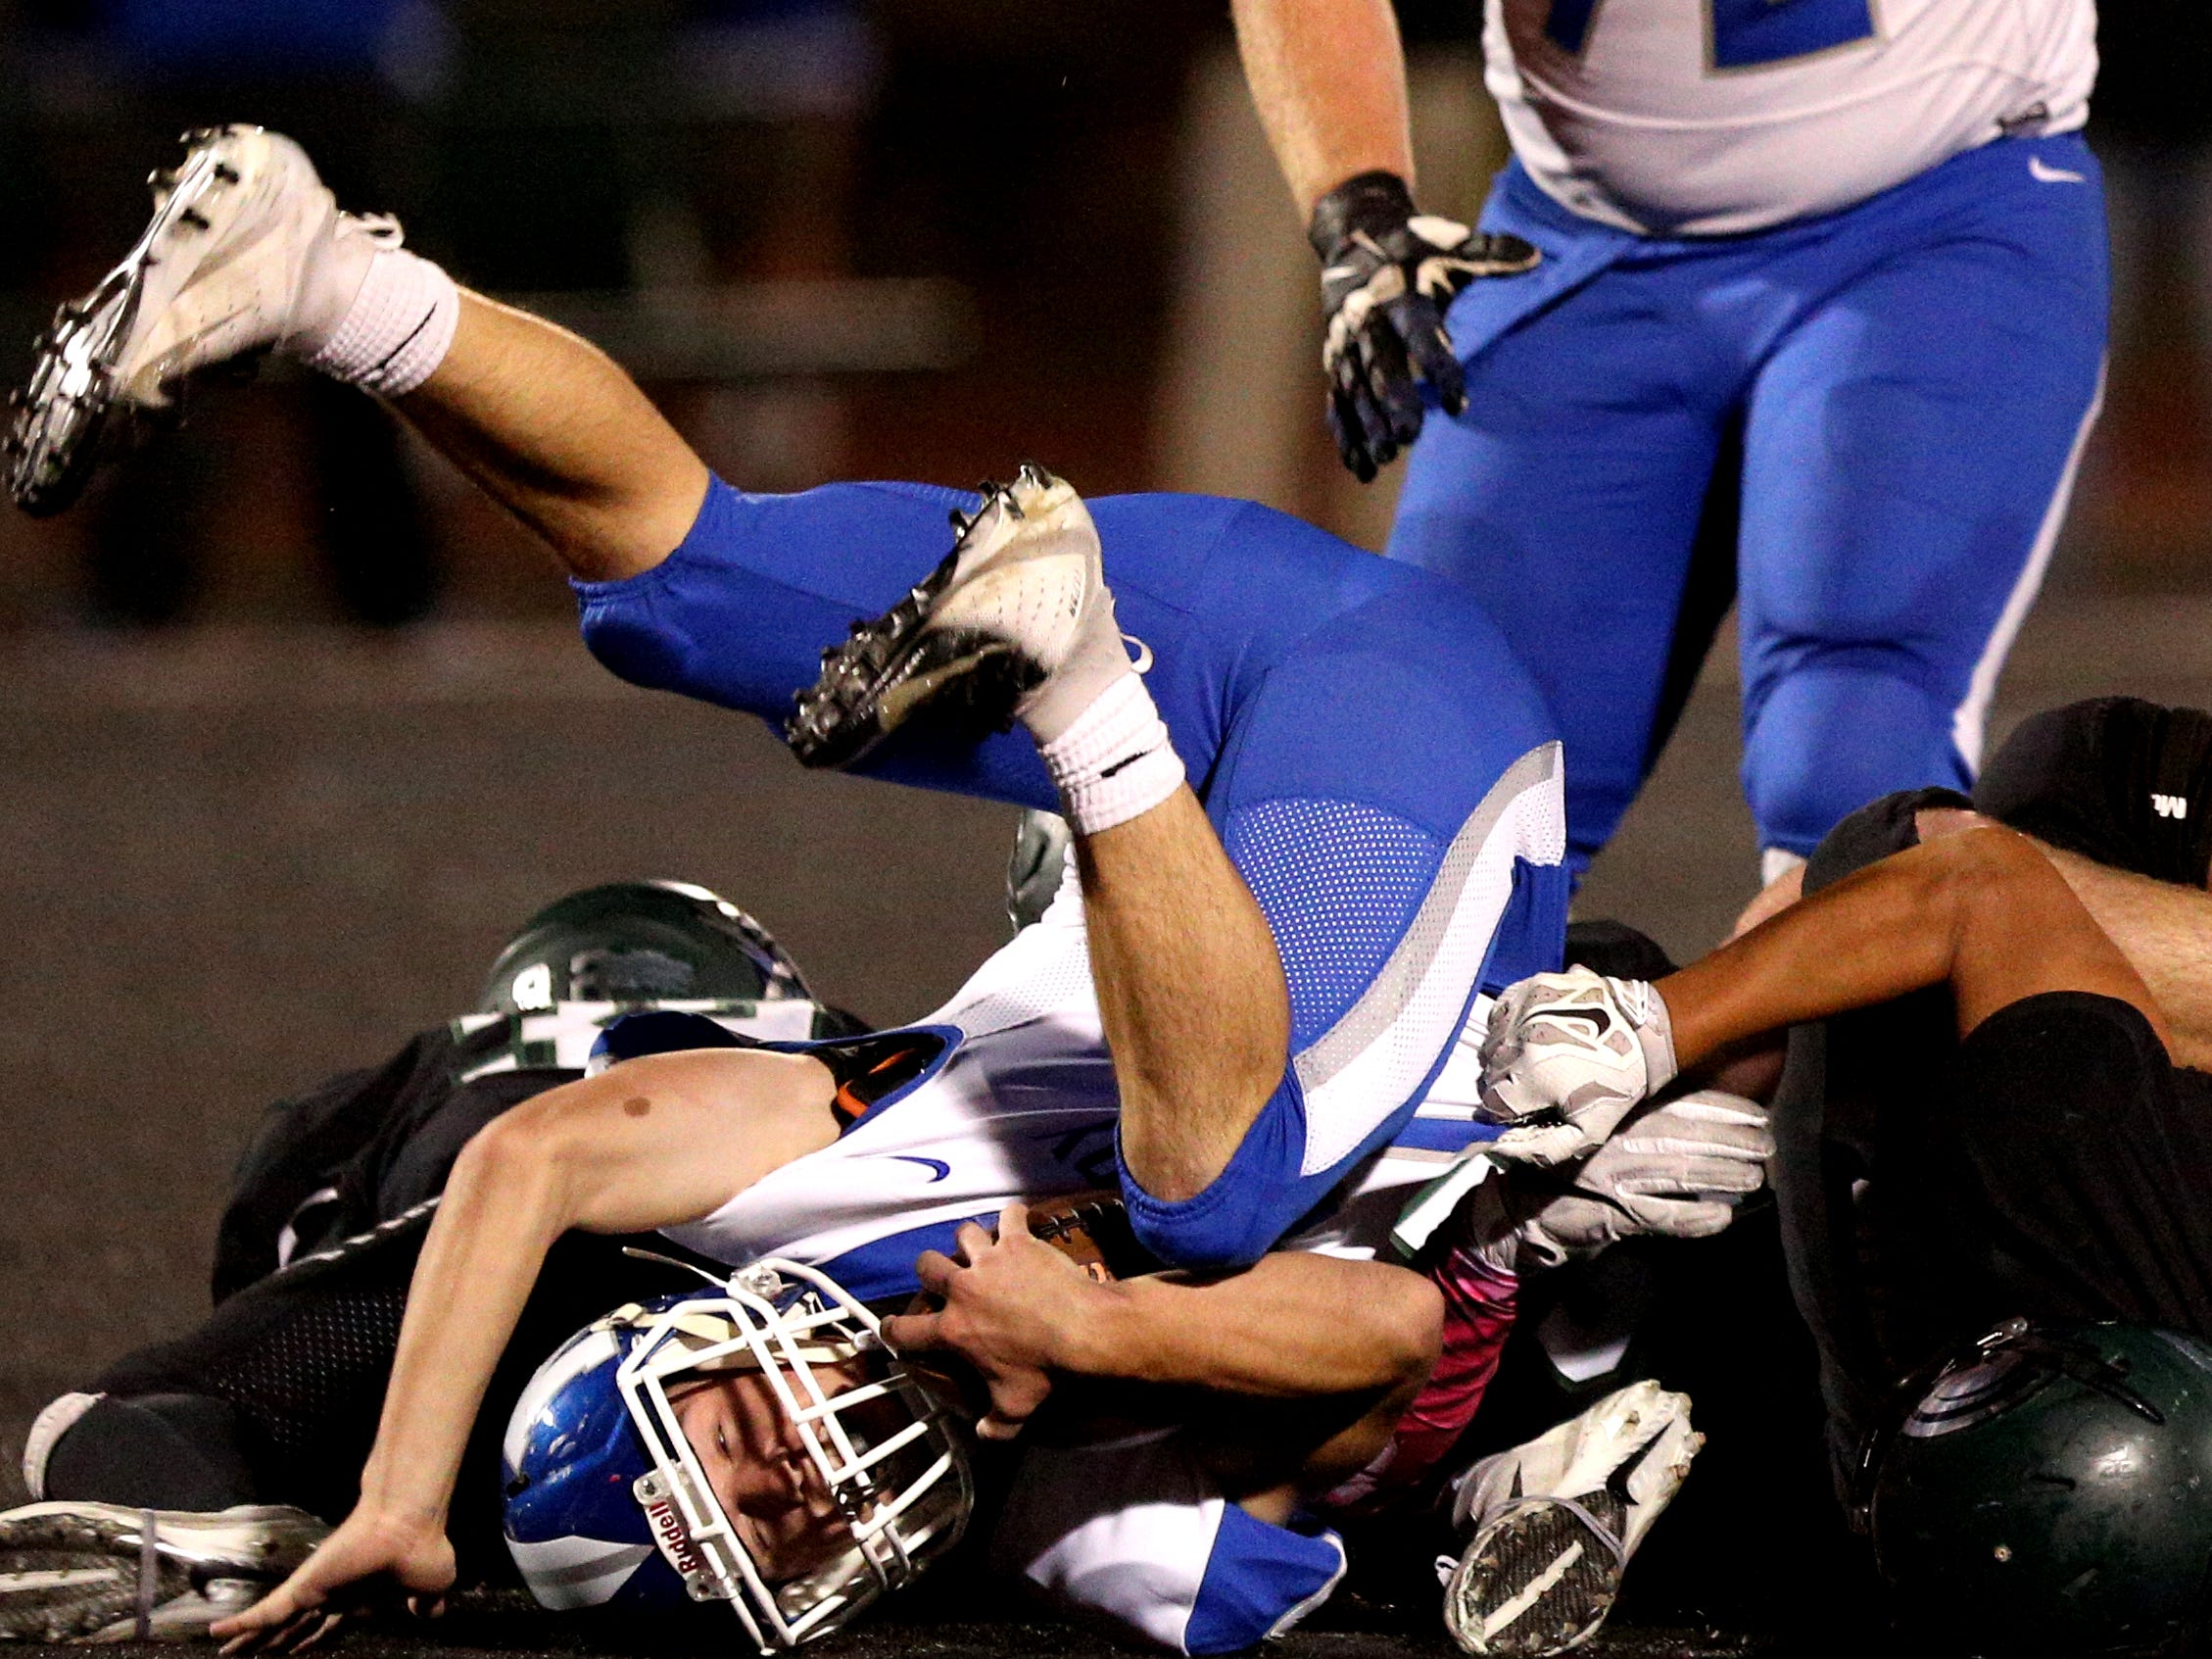 McNary's Robert Benson (7) is tackled during the first half of the McNary vs. West Salem football game at West Salem High School on Friday, Oct. 19.